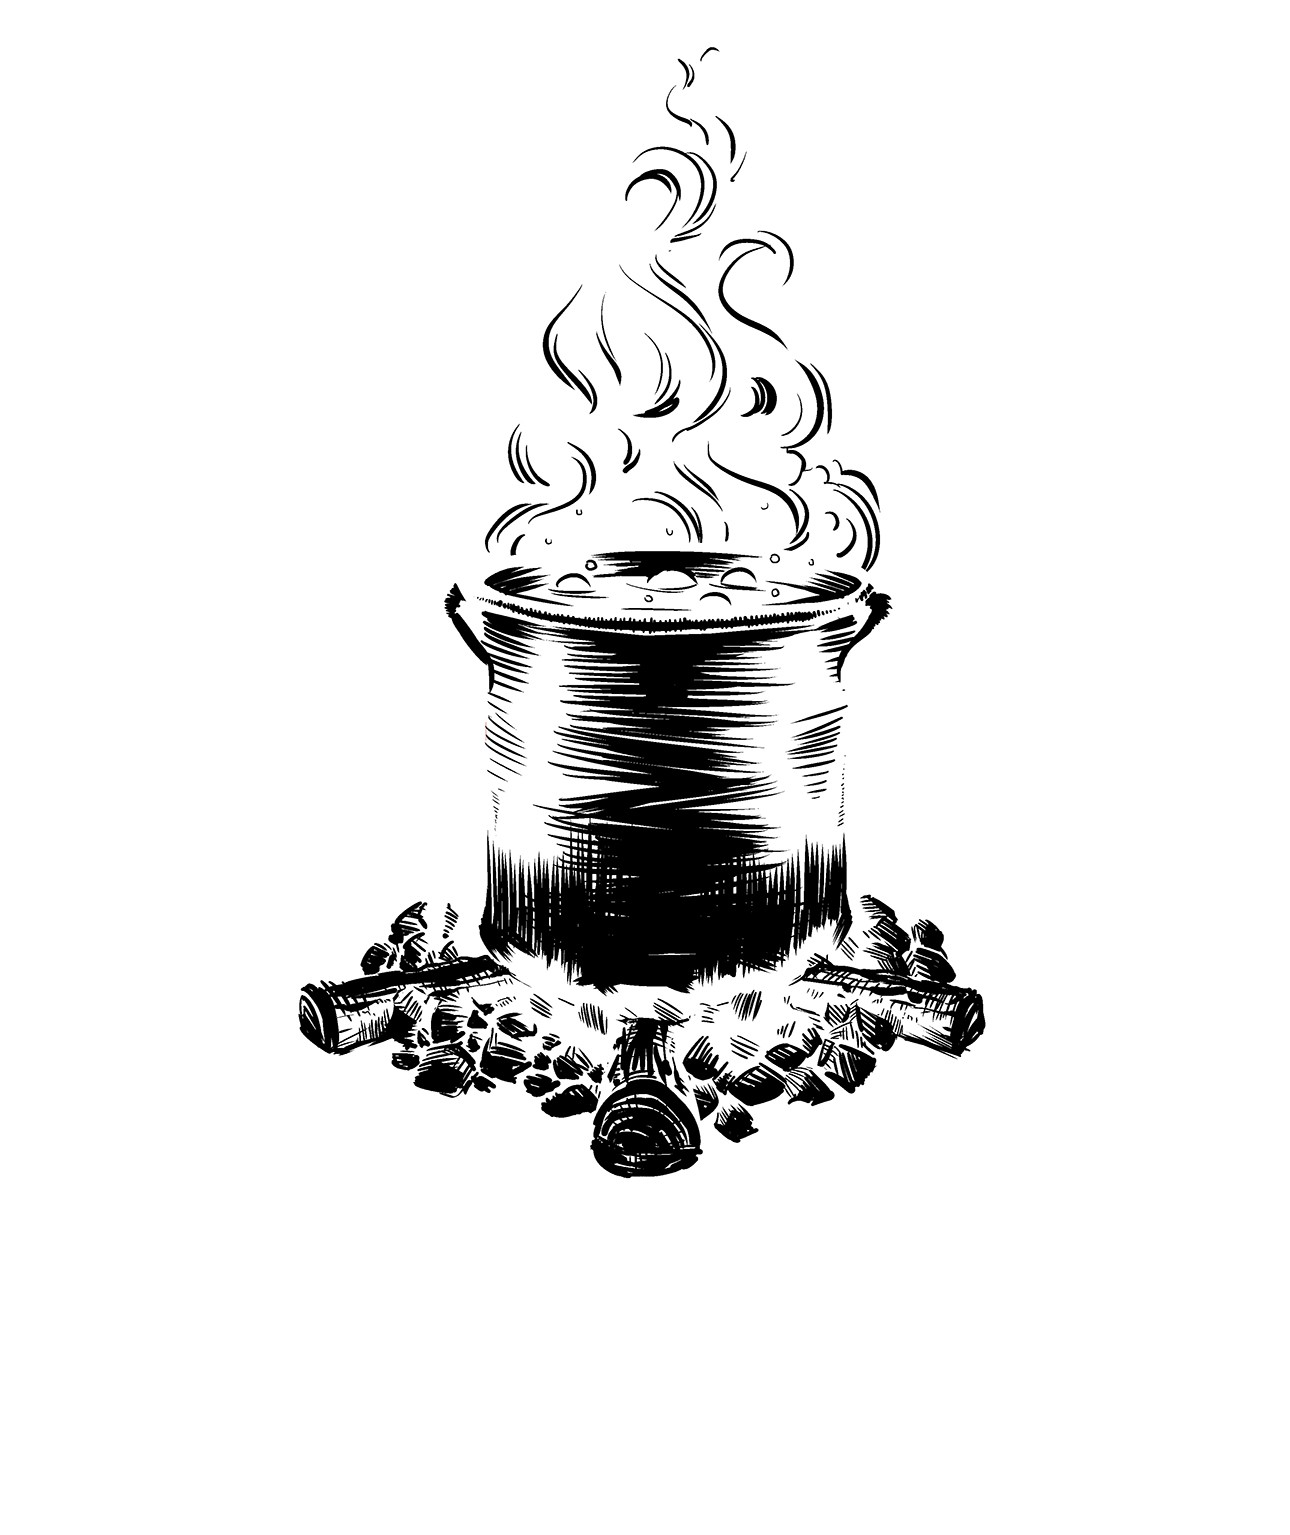 Create a Black and White Illustration for a Salsa Label